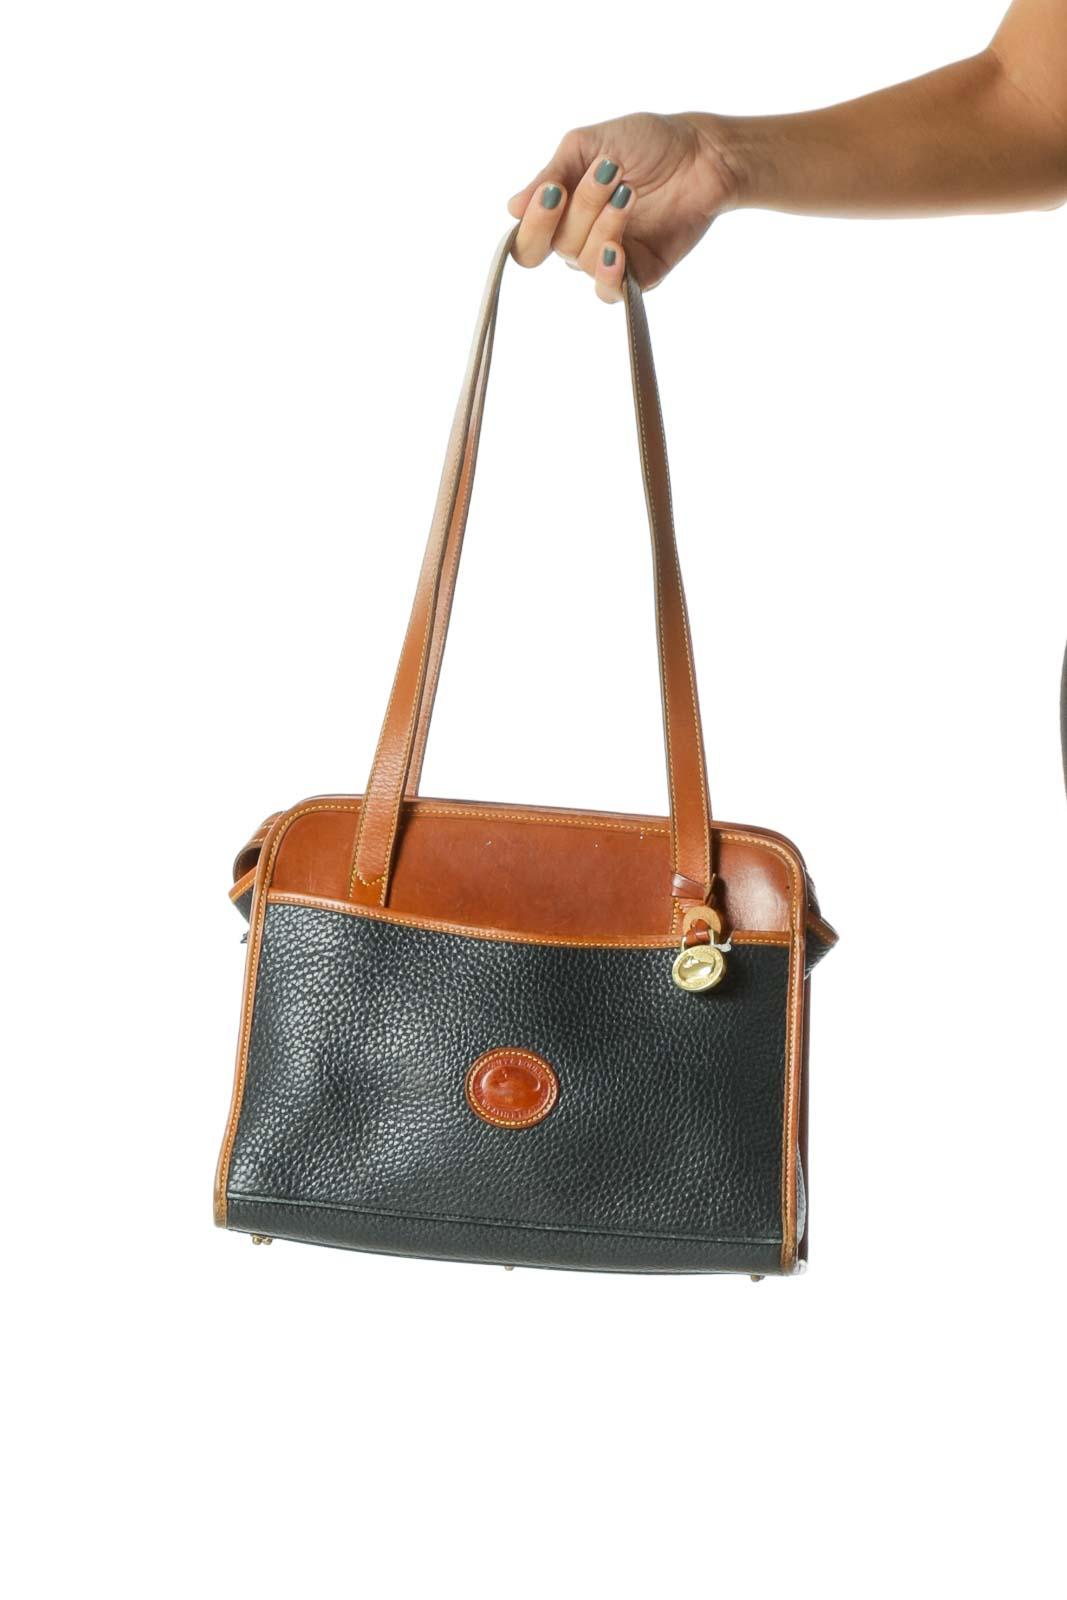 Black and Brown Leather Shoulder Bag Front